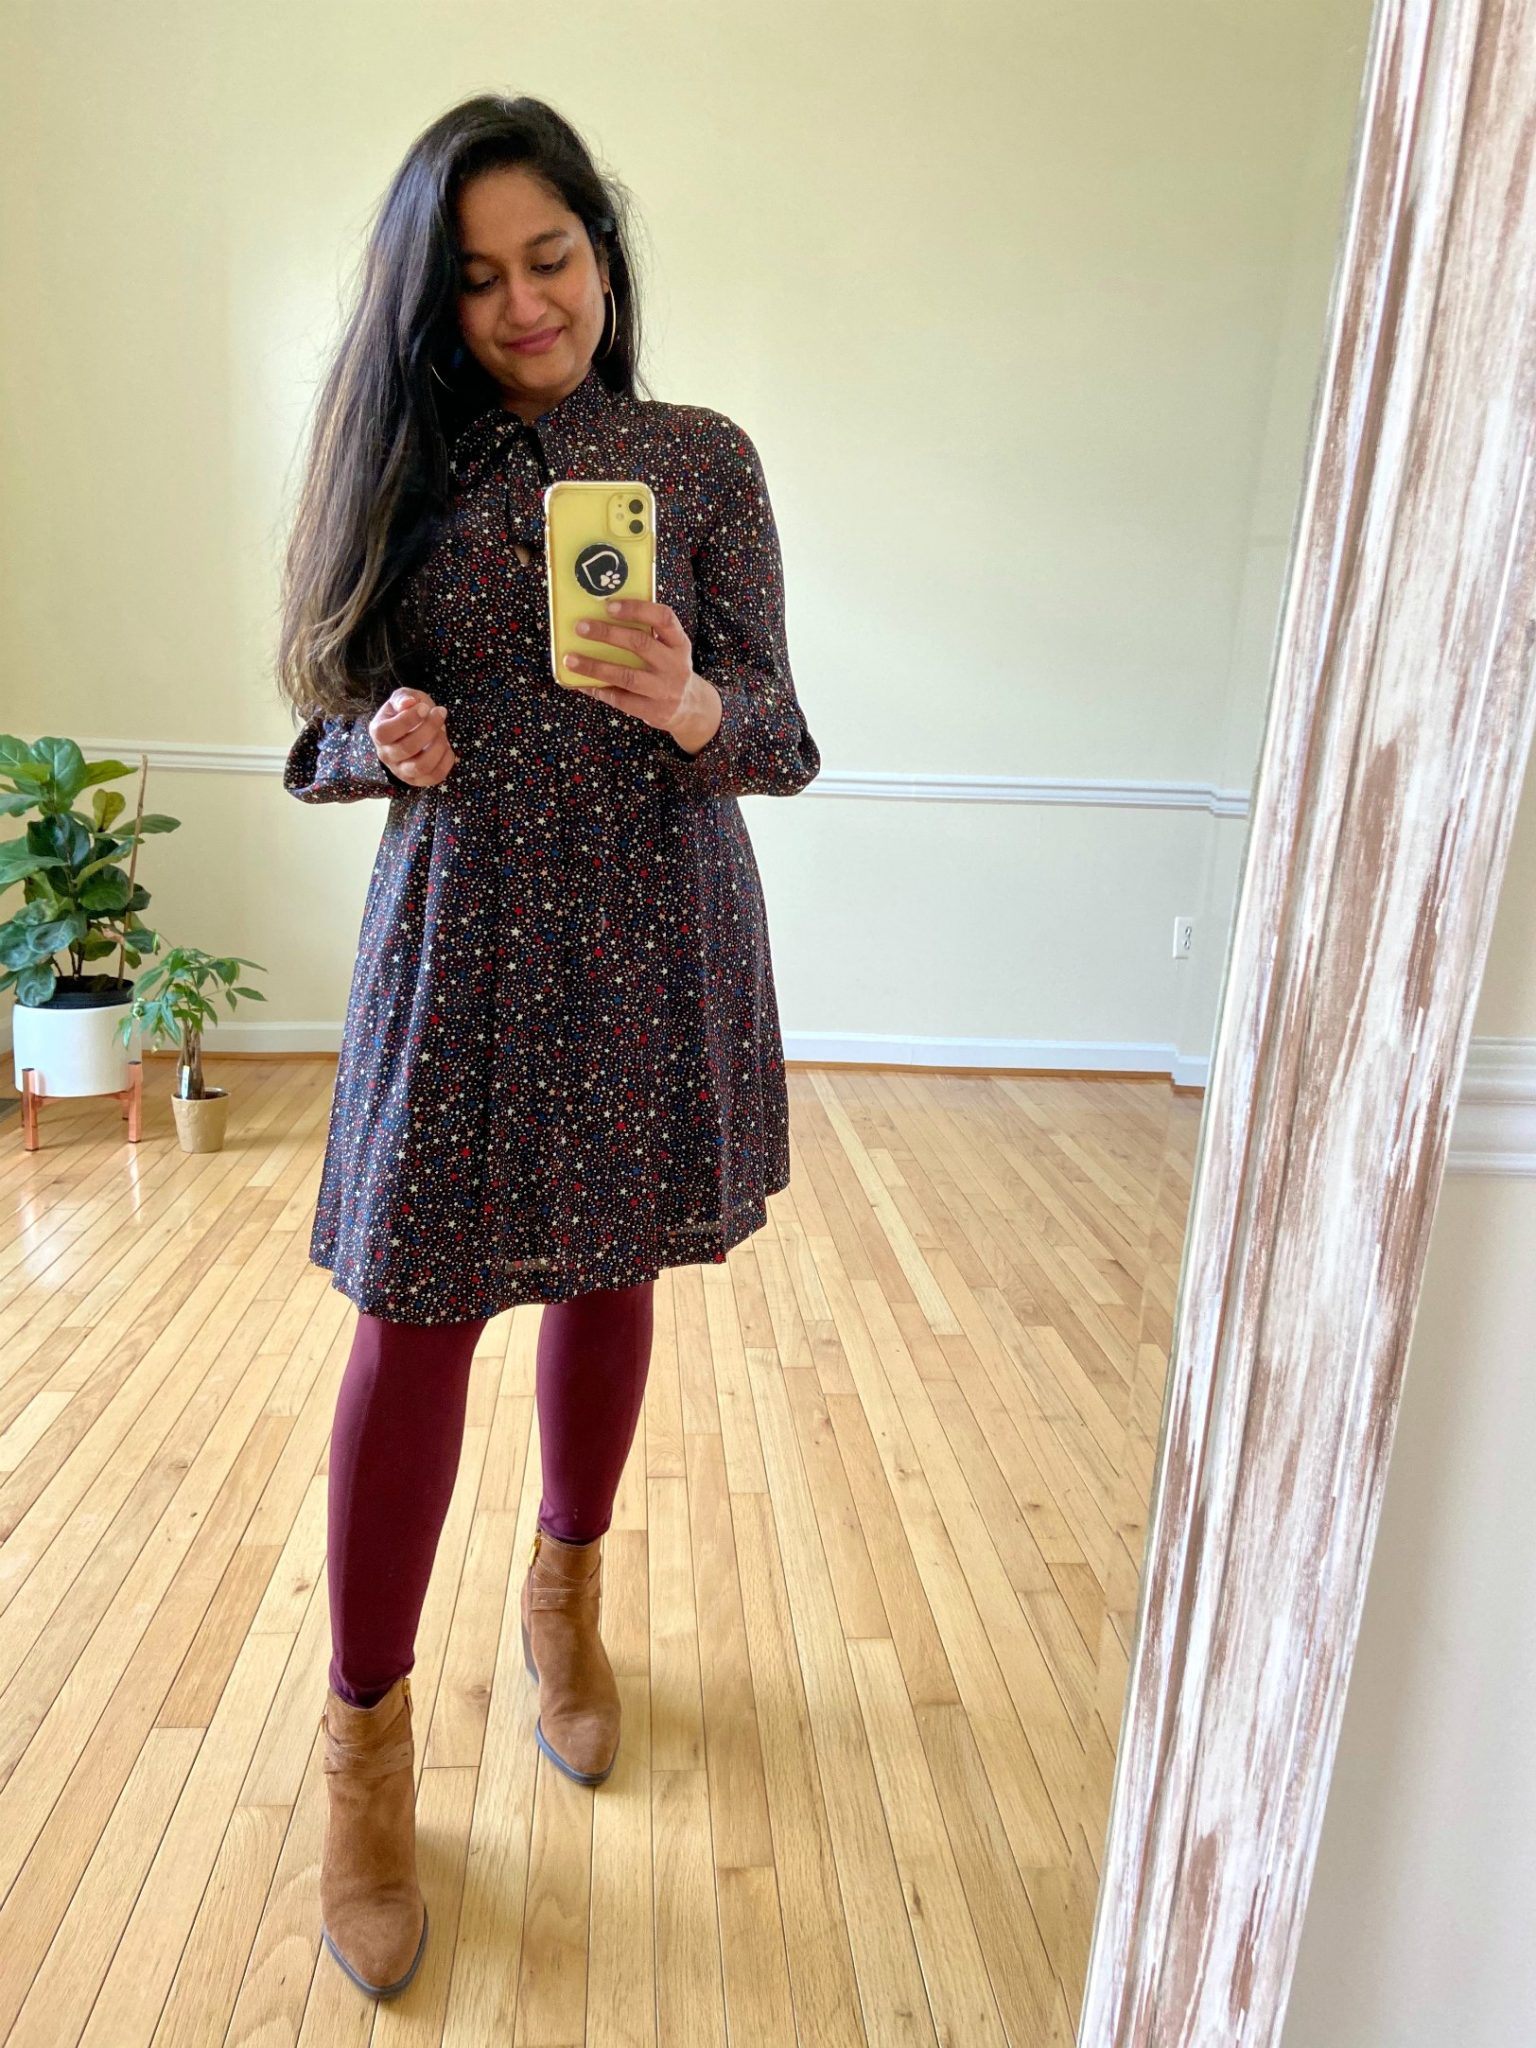 image of a woman How to wear Burgundy leggings All Through the Year (practical outfit ideas): featured by top US lifestyle blog, Dreaming Loud: image of a woman wearing Madewell printed dress, Naturalizer Fenya Booties | Burgundy Leggings Outfit by popular Michigan fashion blog, Dreaming Loud: image of a woman wearing Amazon Fengbay High Waist Yoga Pants with Pockets, Madewell dress, Macys Naturalizer Fenya Booties, and Amazon Huge Gold Hoop Earrings.